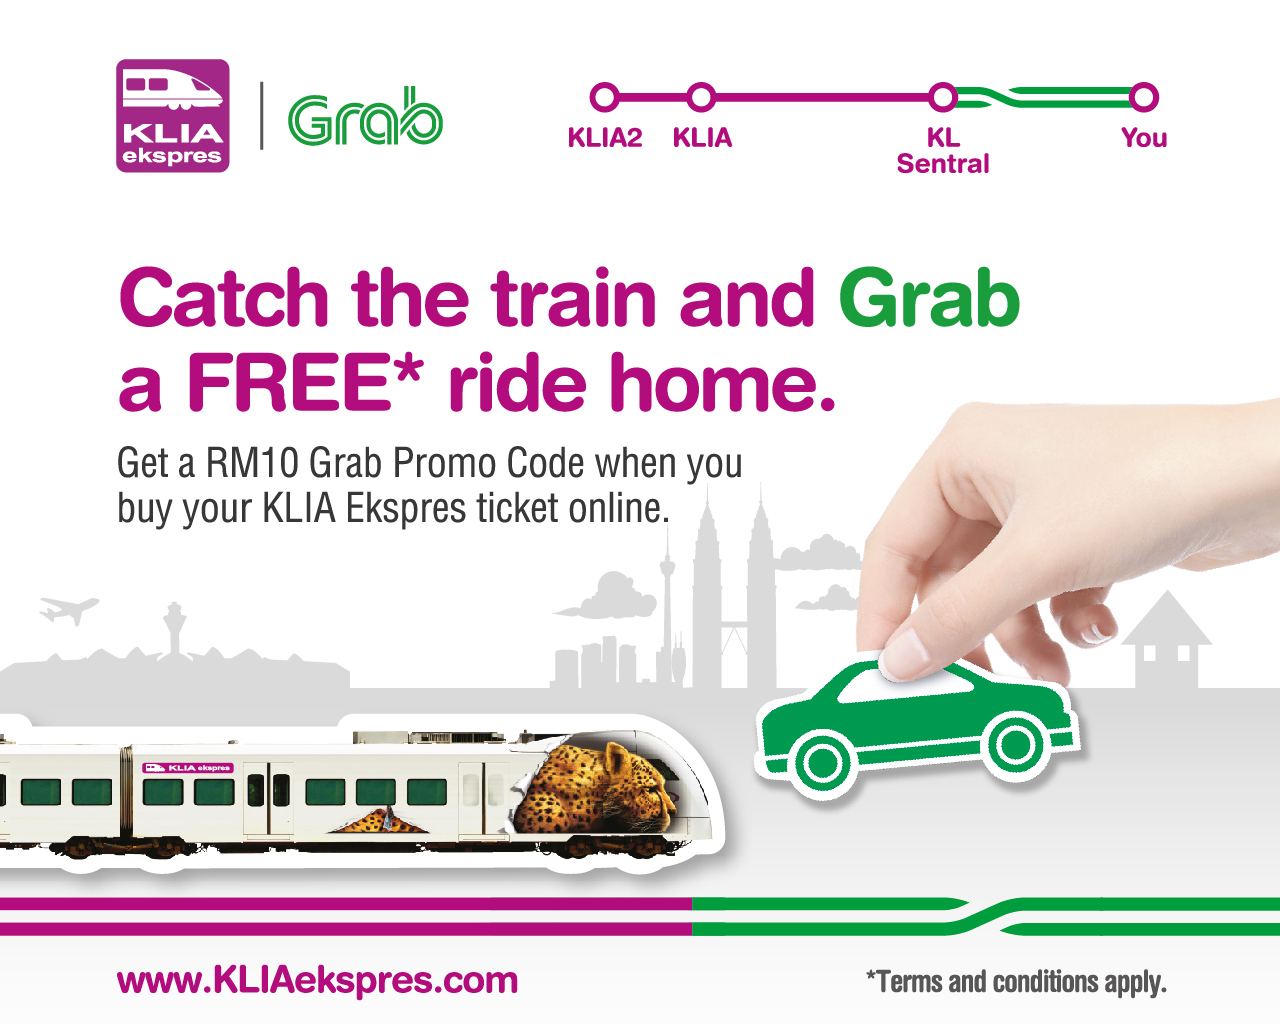 KLIA Ekspres Grab Package